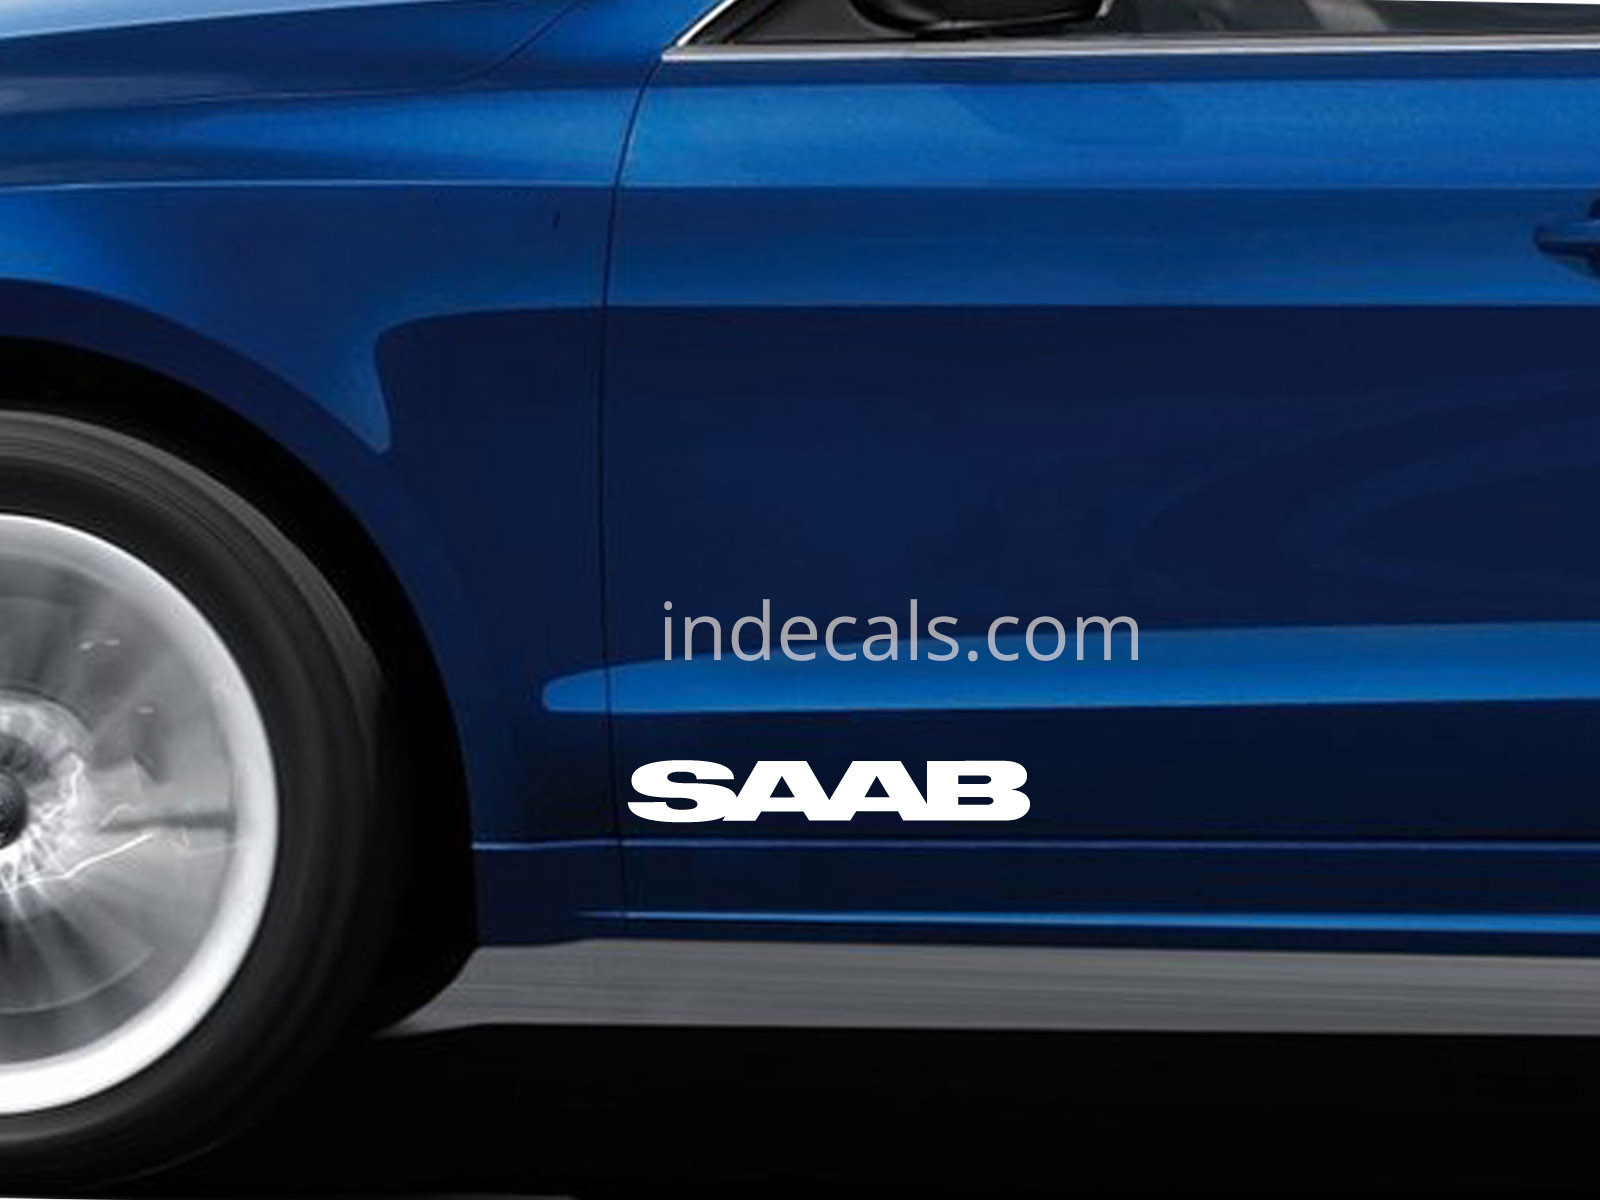 2 x Saab Stickers for Doors Large - White